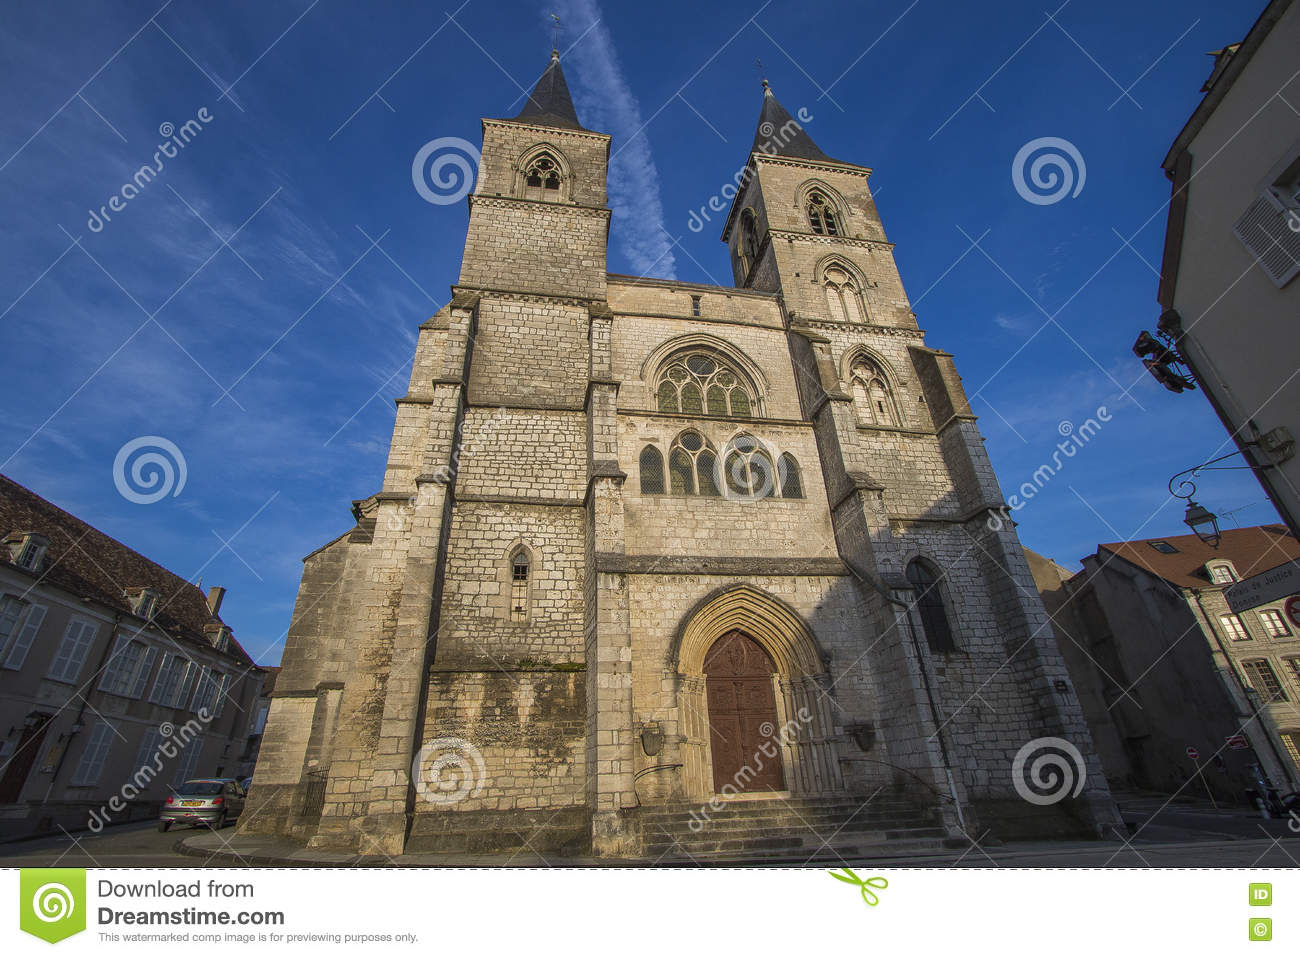 Cathedral of Chaumont, France